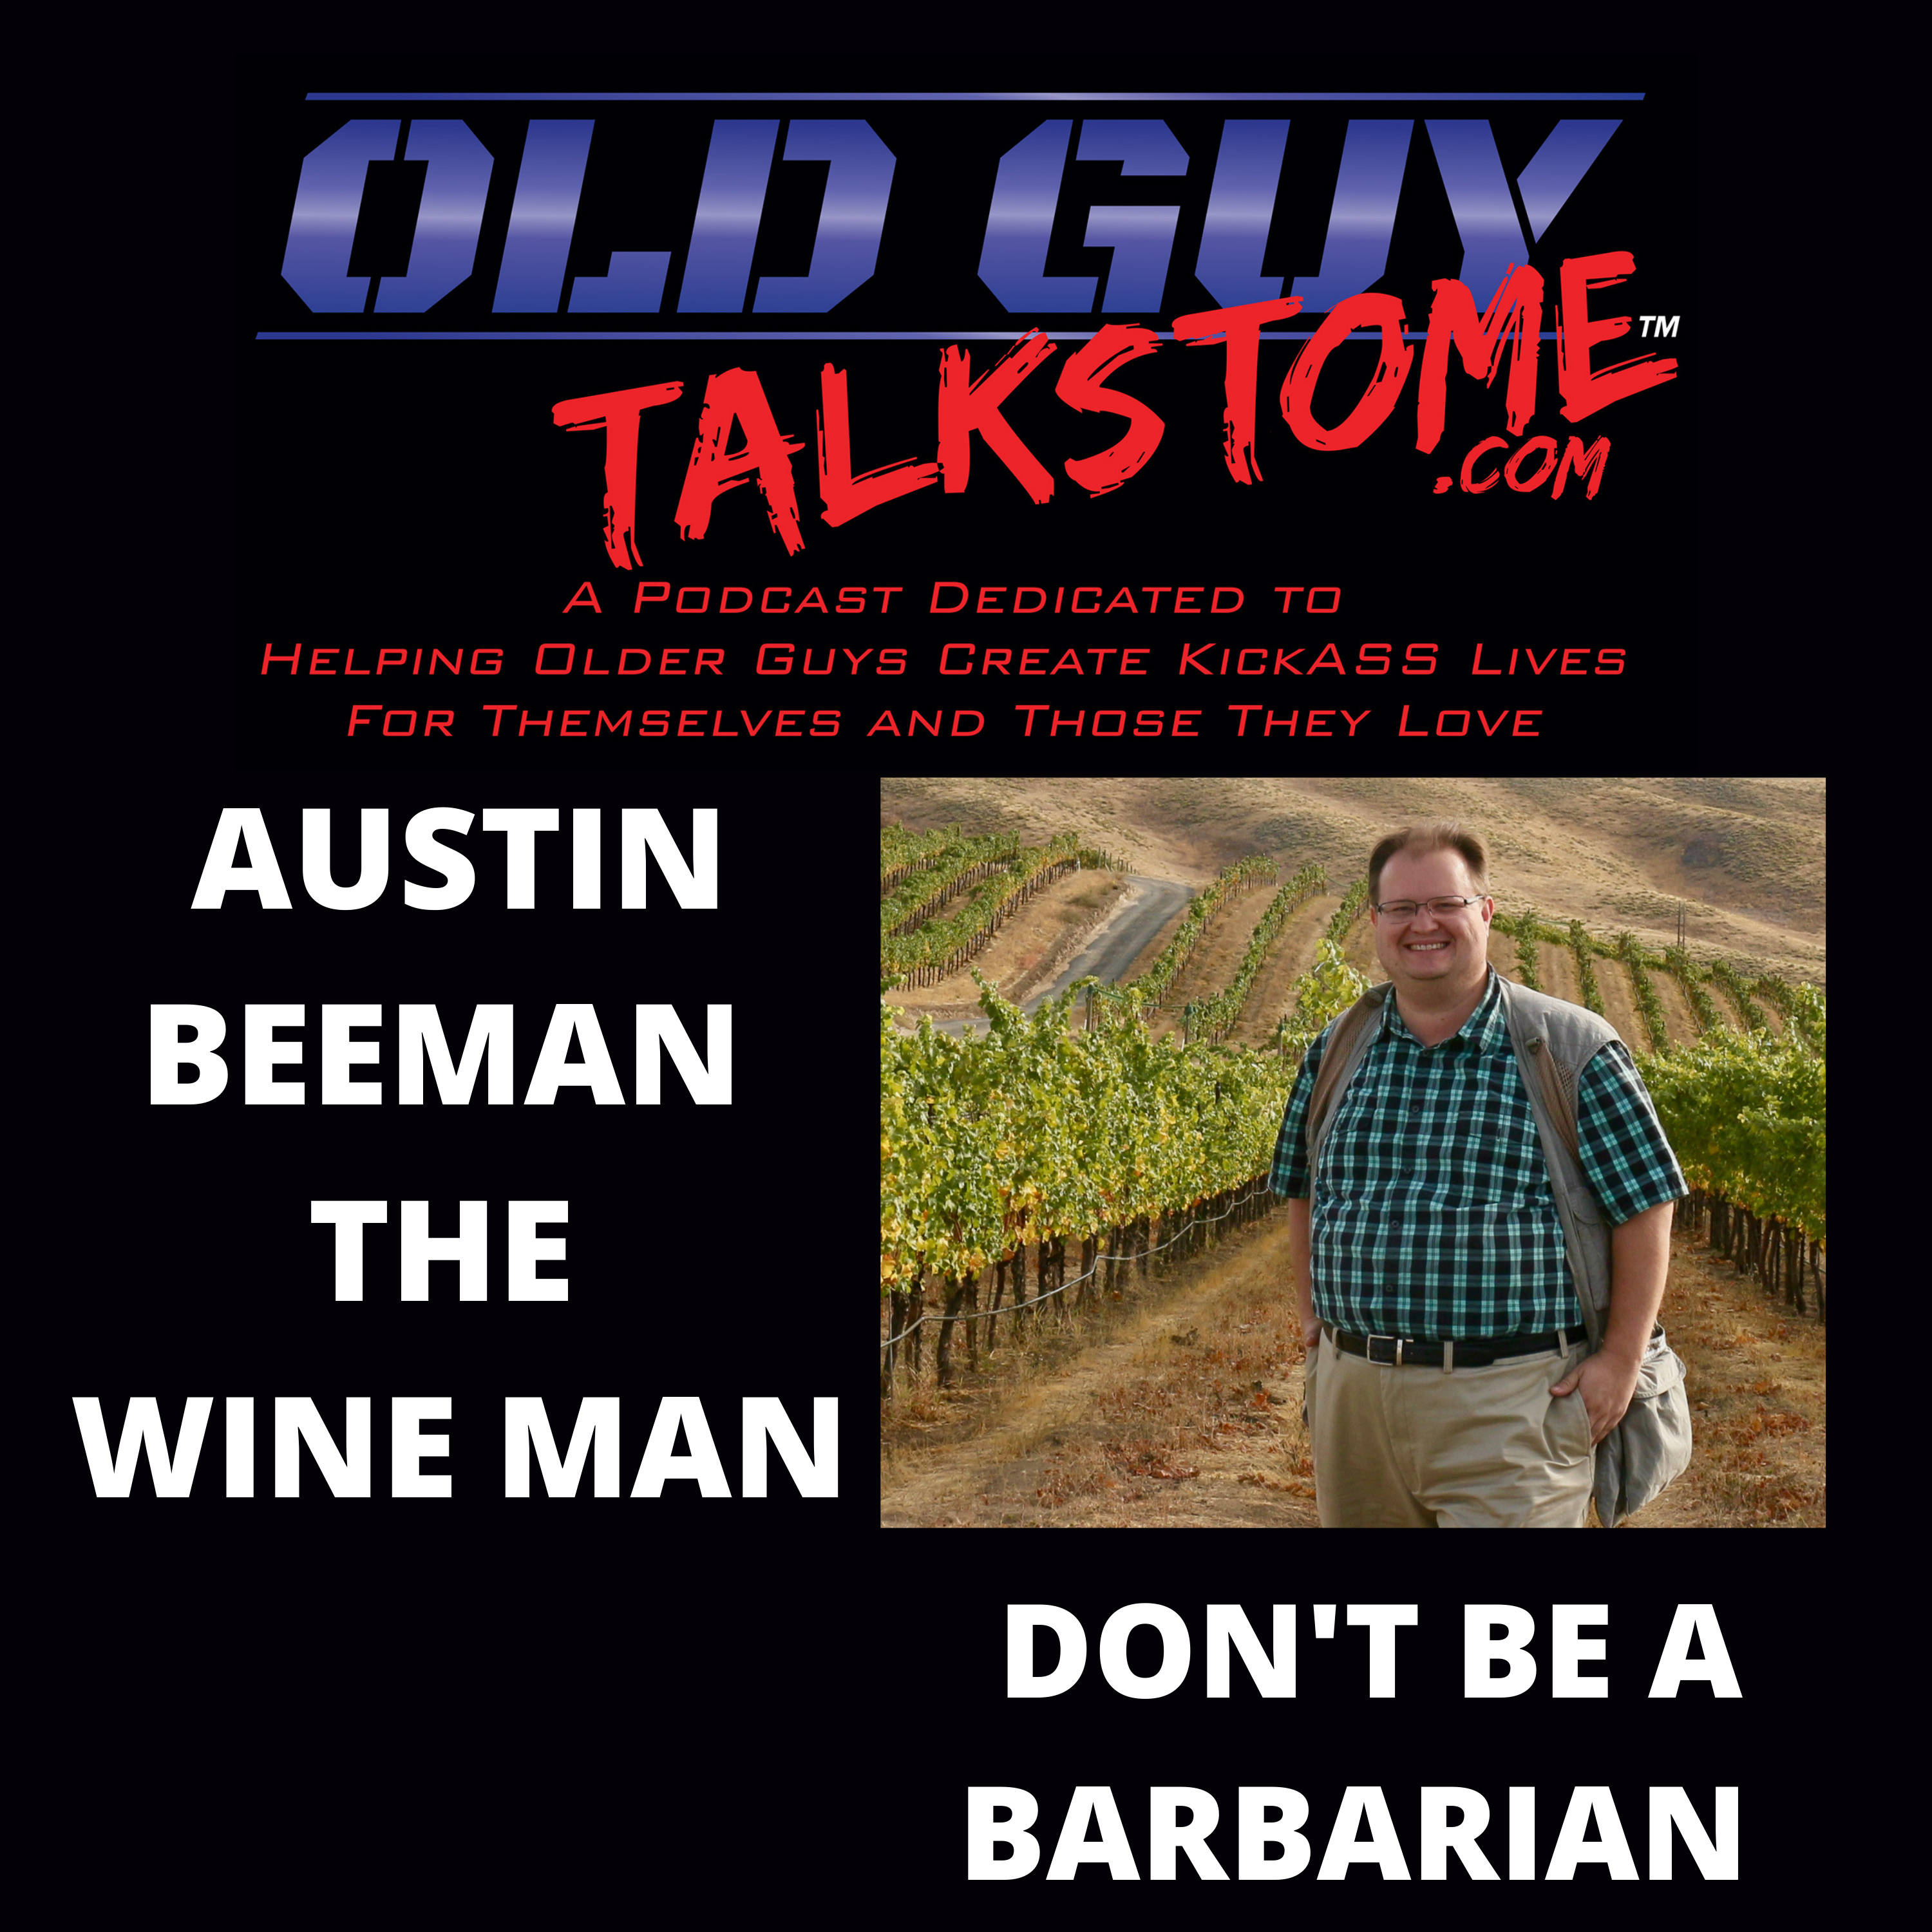 OldGuyTalksToMe - Austin Beeman the Wine Man: Don't be a Barbarian